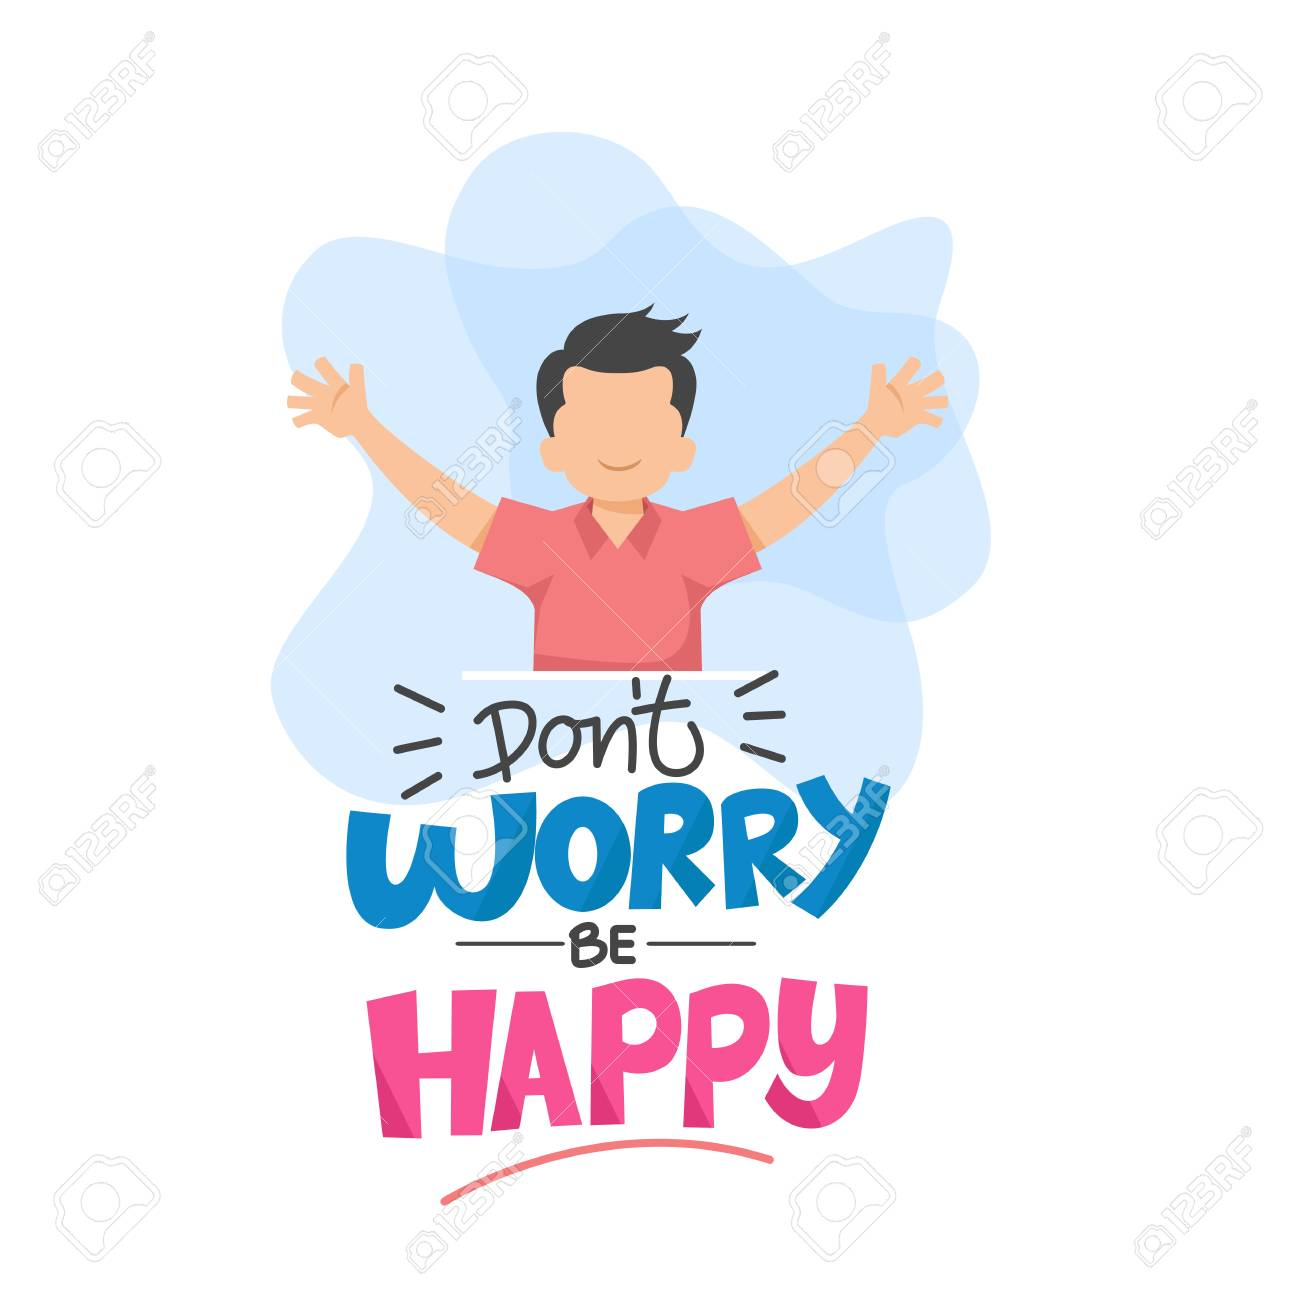 Don't Worry Be Happy Typography Vector Illustration.